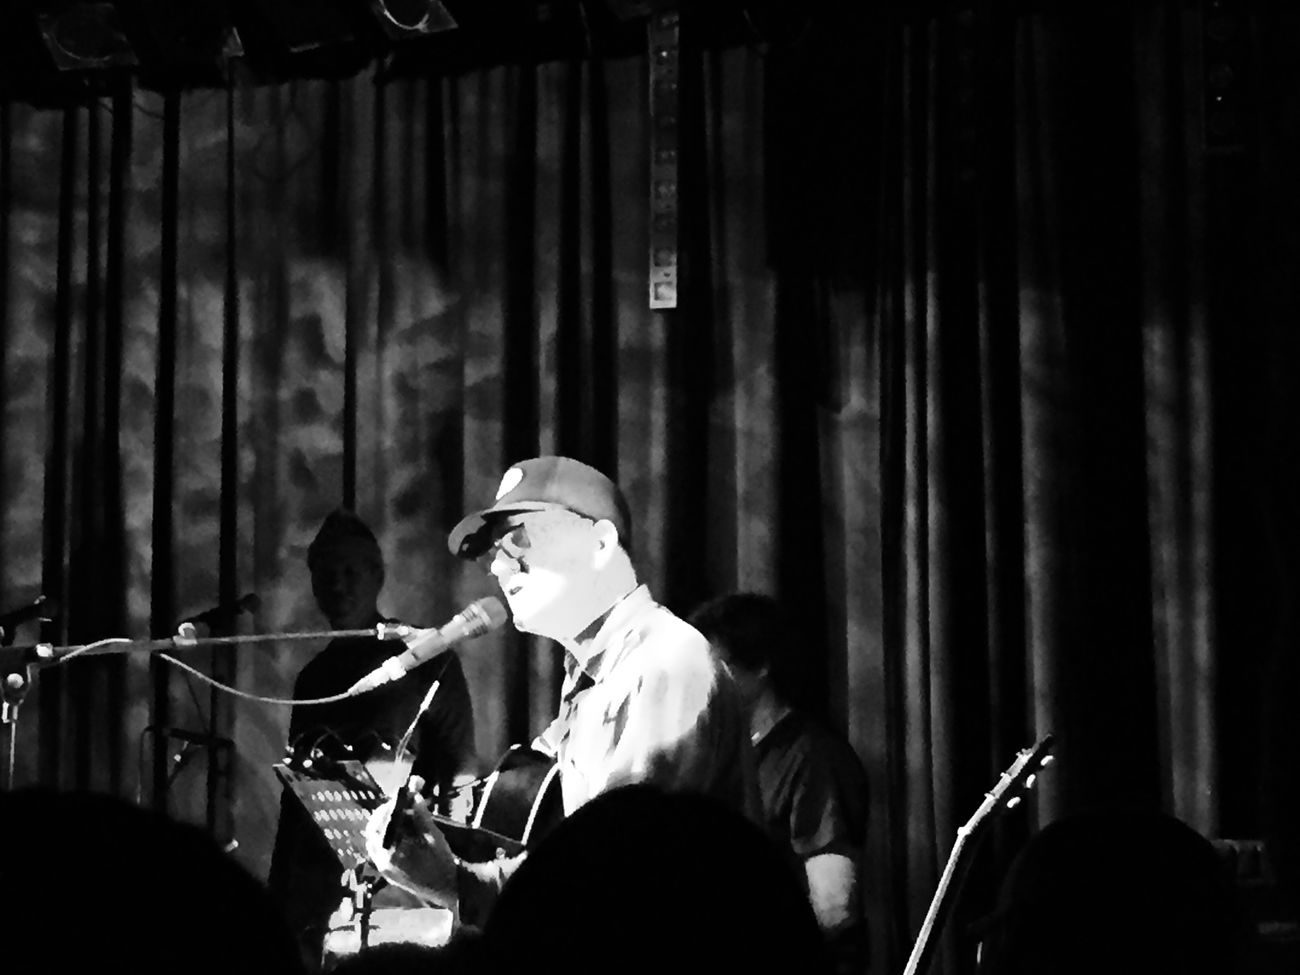 Lambchop Vienna Concert Wonderful What Does Music Look Like To You? Black And White